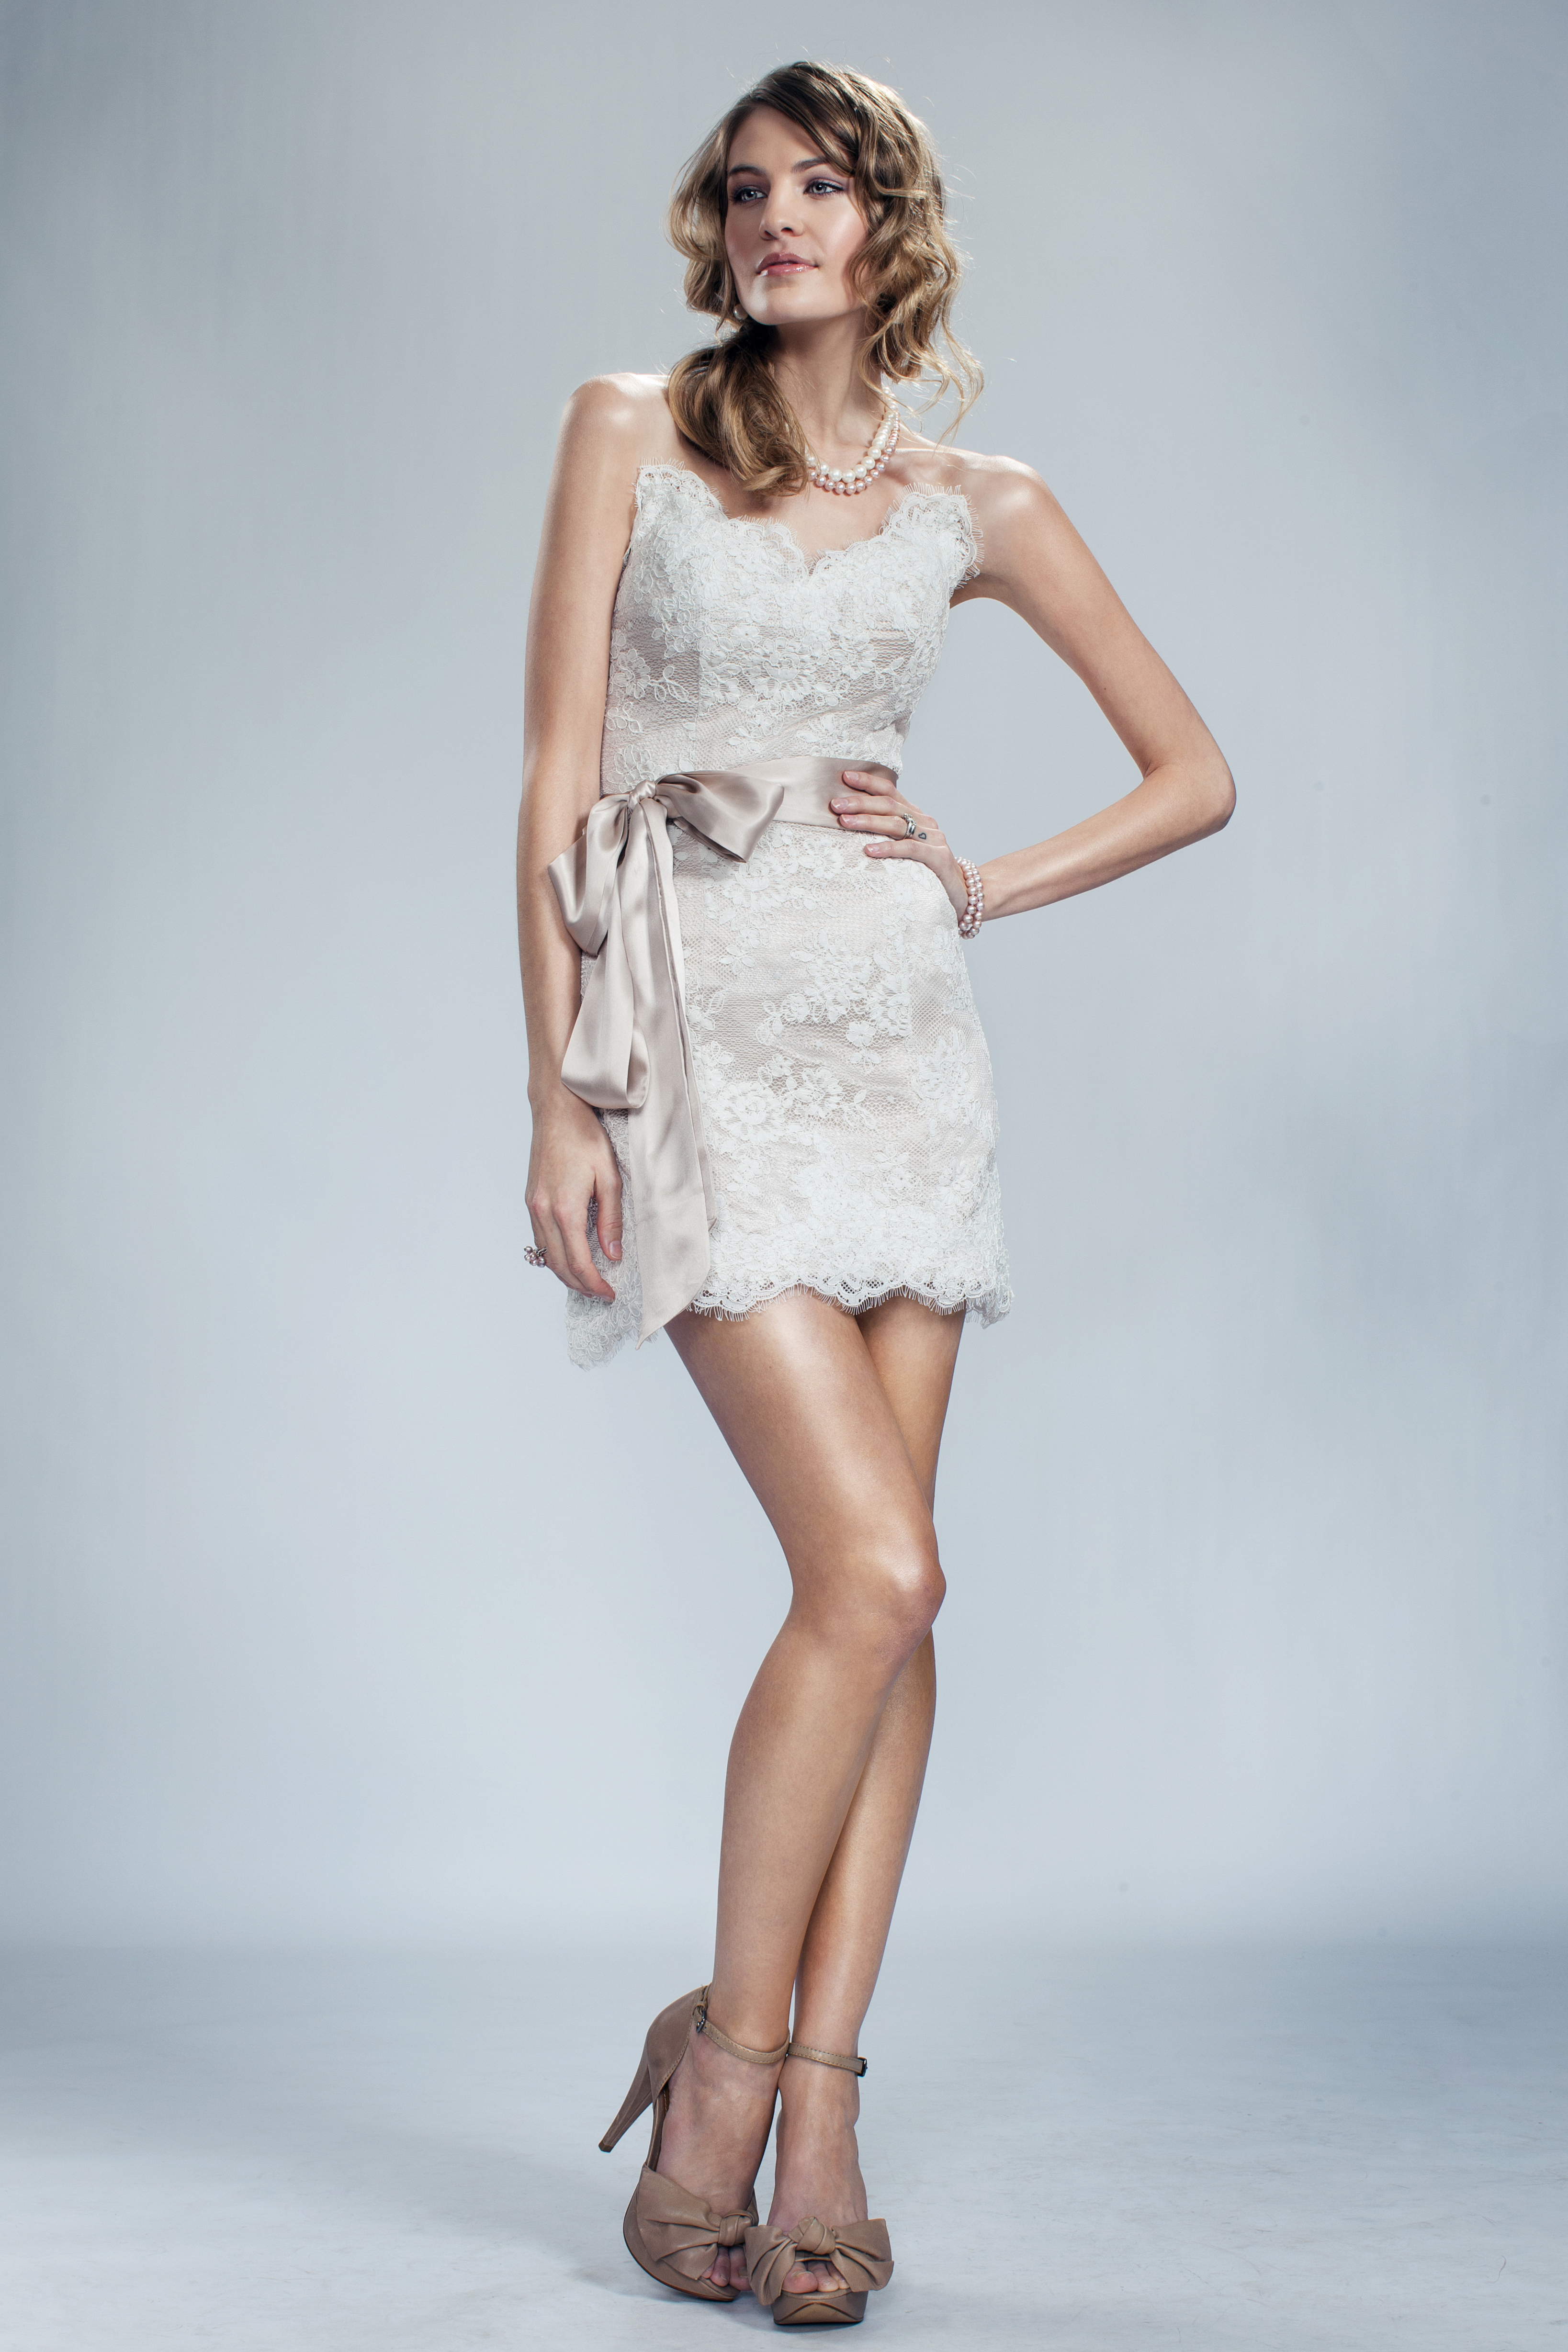 Wedding Dresses, Sweetheart Wedding Dresses, Fashion, Gown, Sweetheart, Spaghetti straps, Halter, Ribbon, Belt, Chiffon, Silk, Reception dress, Olia zavozina, strapleses, halter wedding dresses, alencon lace, charmeuses, Spahetti Strap Wedding Dresses, Chiffon Wedding Dresses, Silk Wedding Dresses